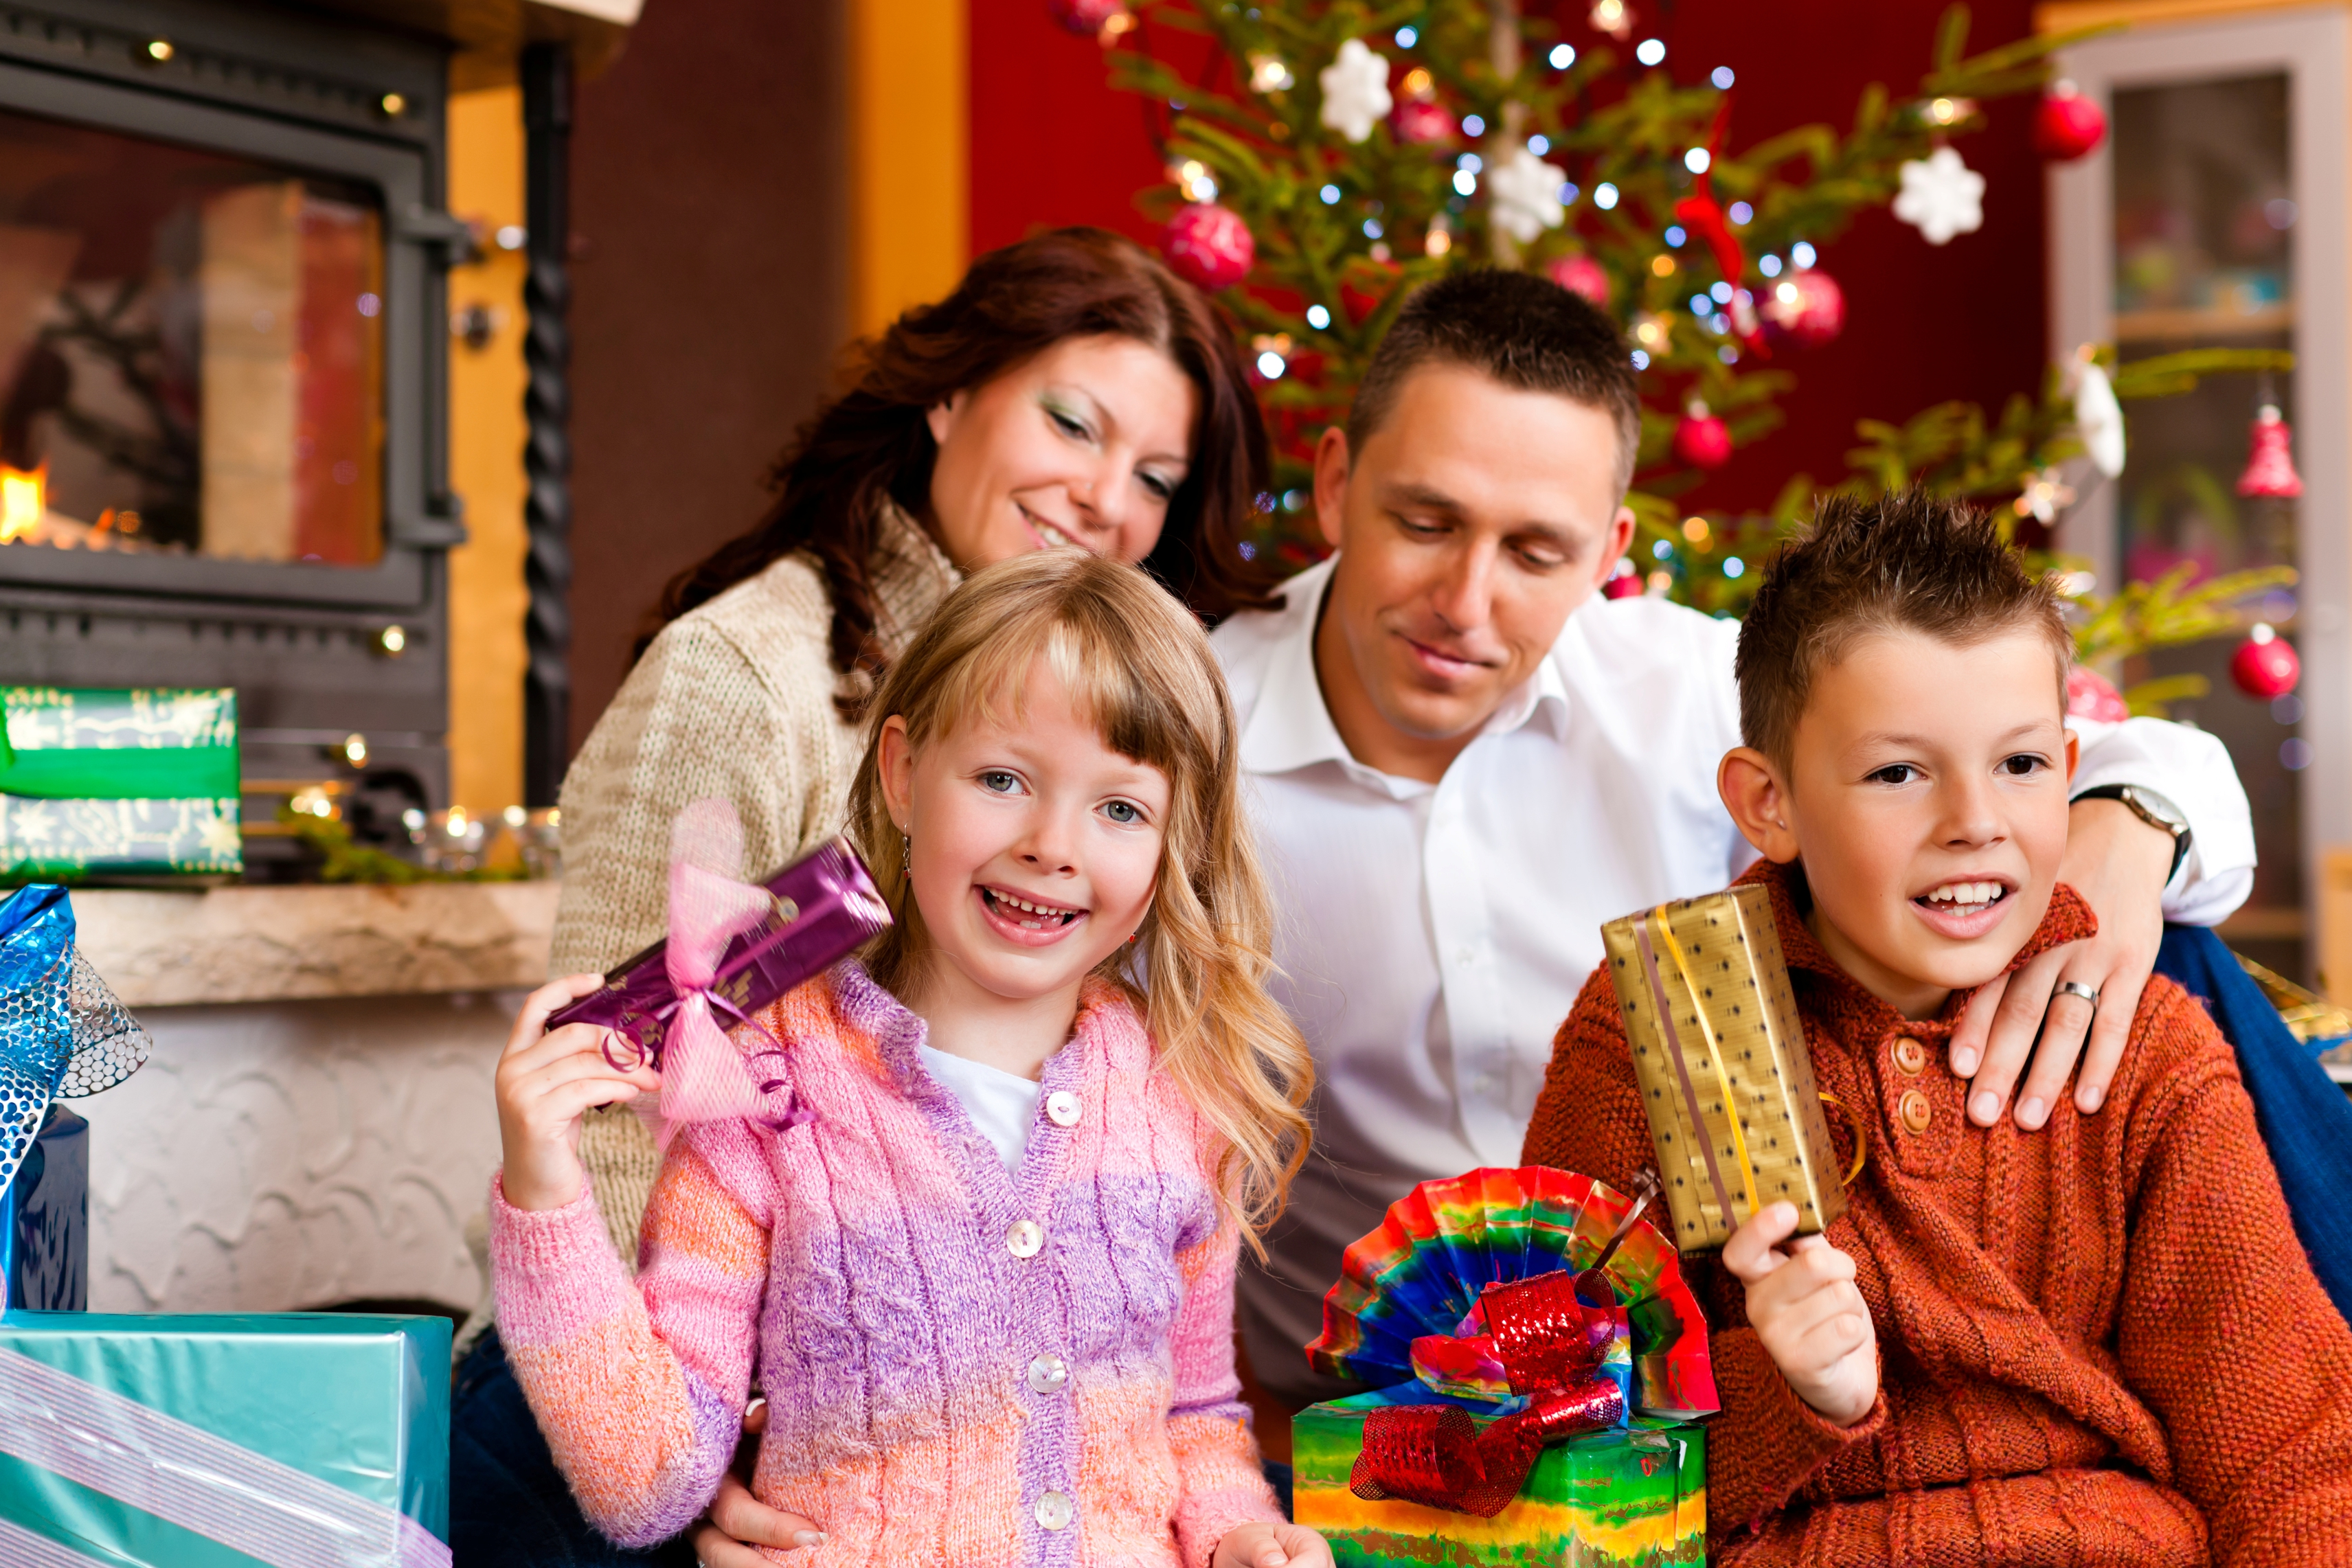 Christmas Family Photo Relationship Counselling Charity Reveals How To Avoid Christmas